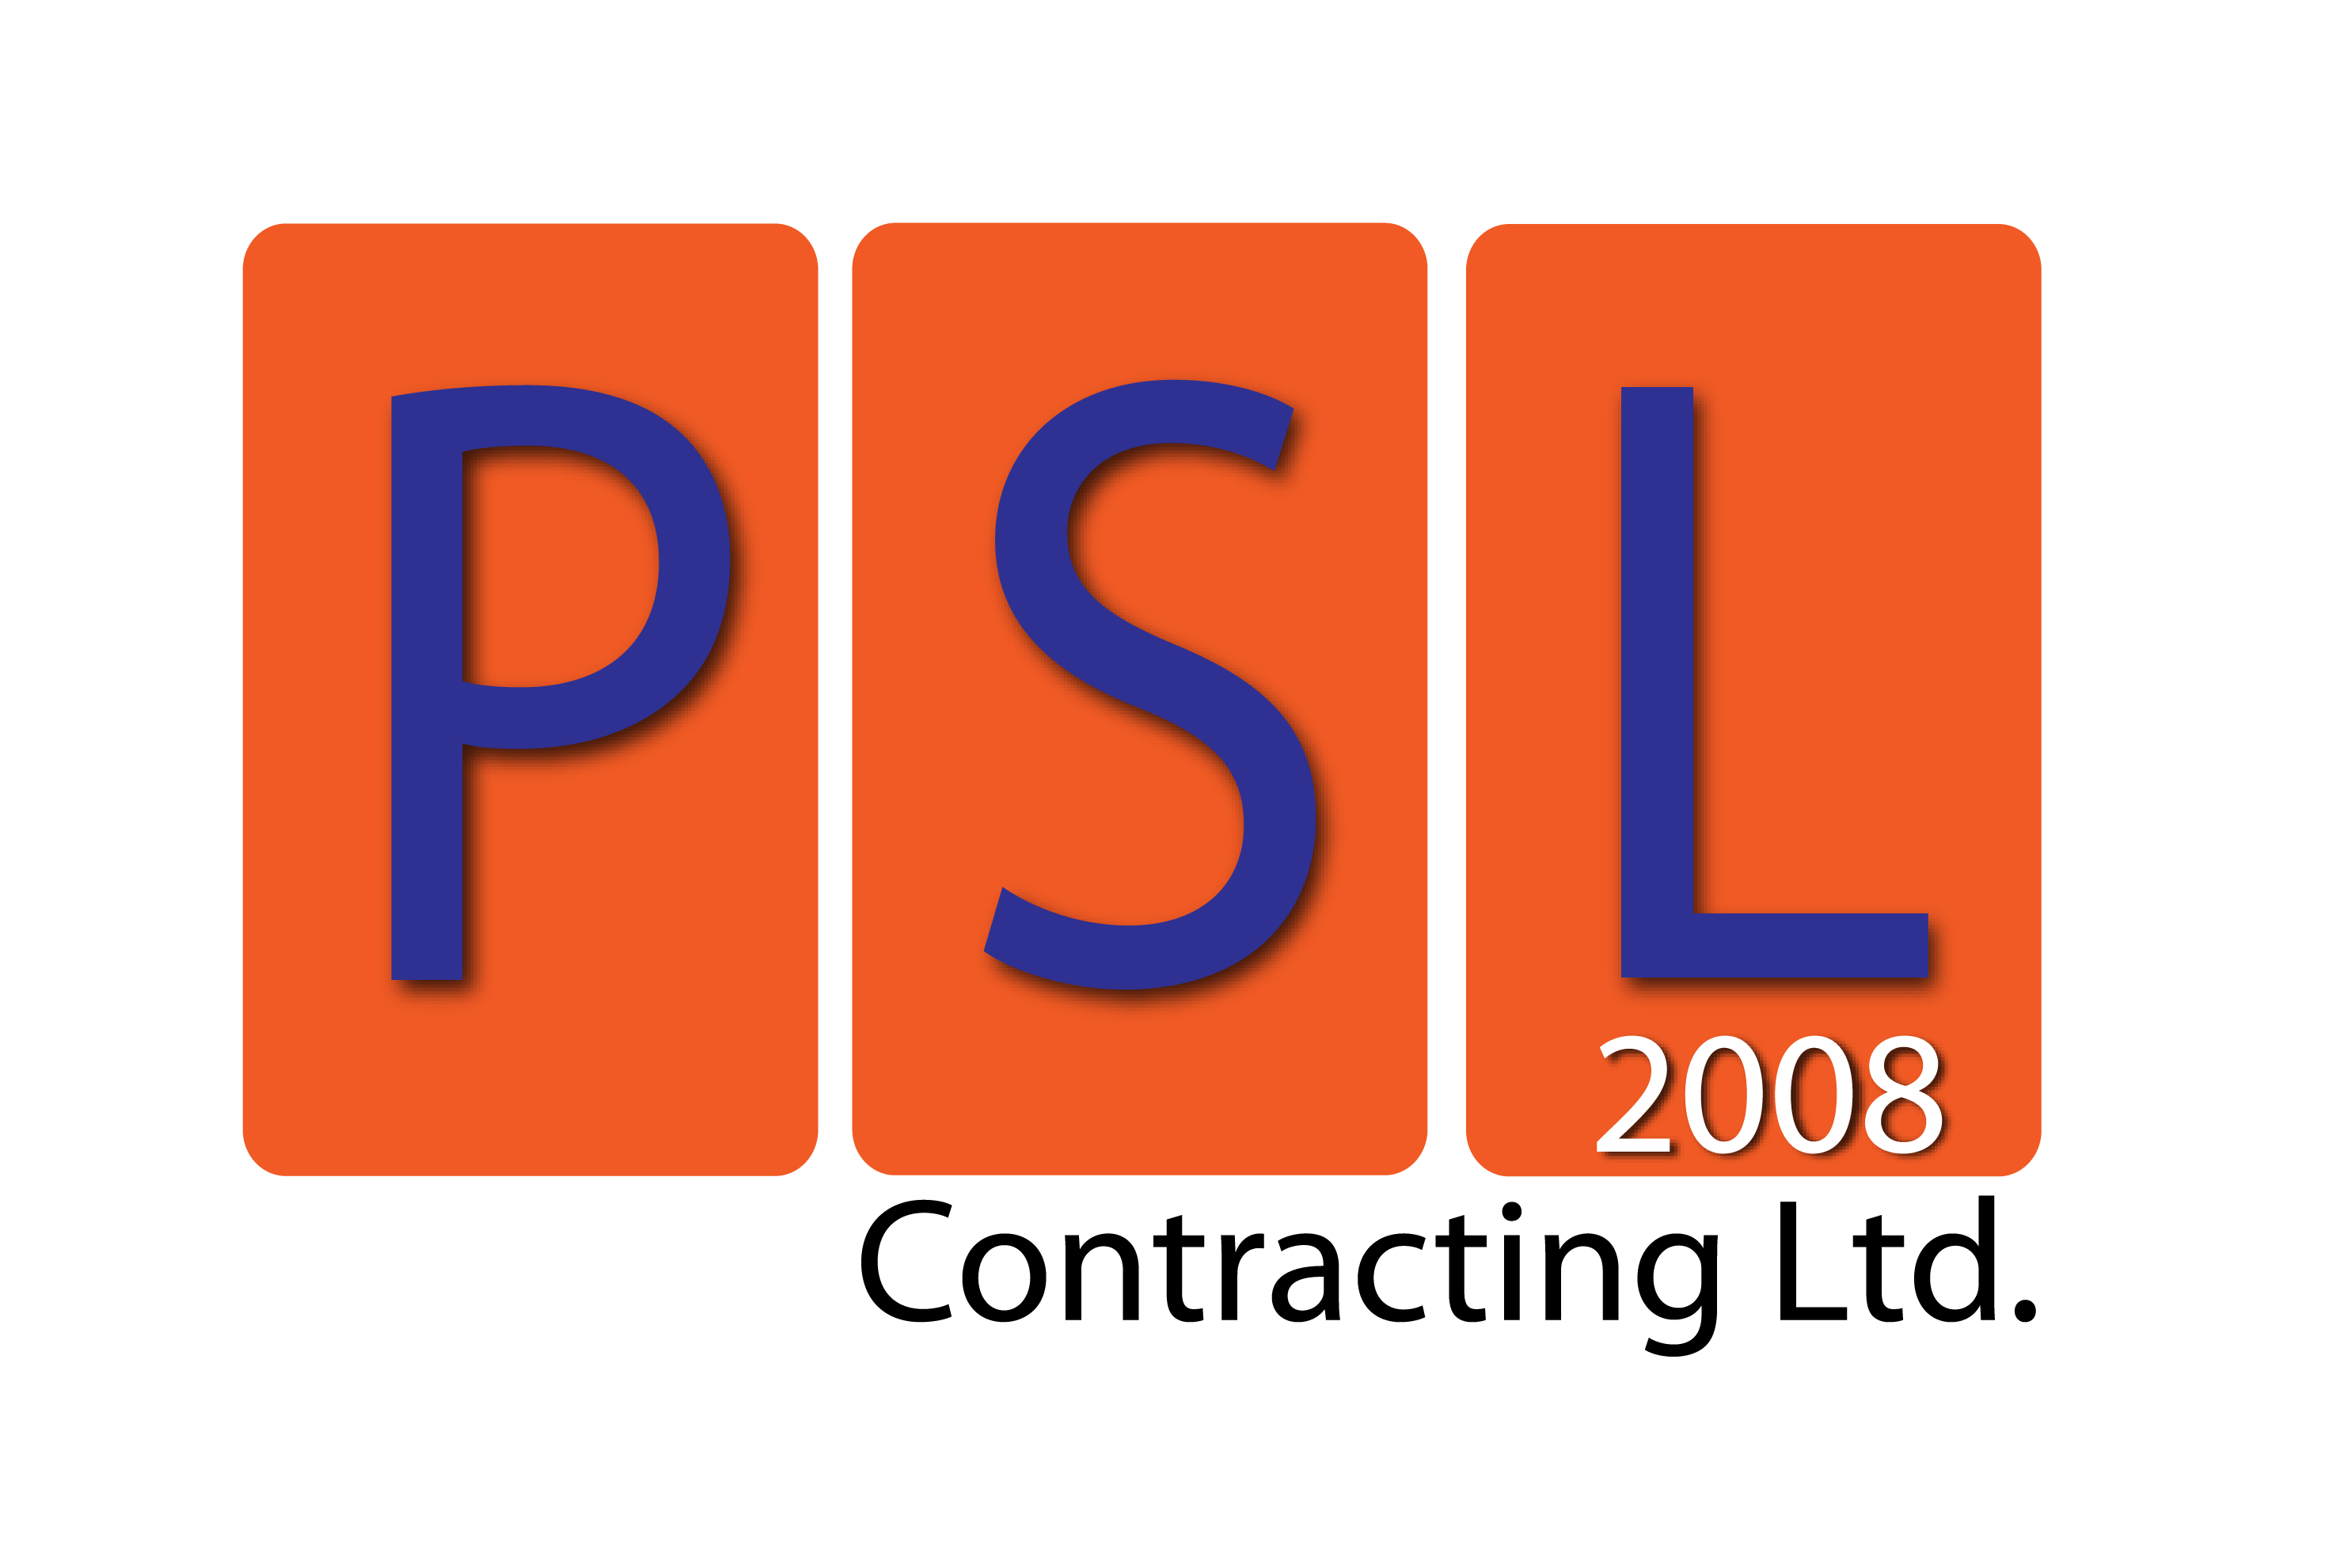 Logo Design by Jerry Nable Jr - Entry No. 23 in the Logo Design Contest PSL Contracting (2008) Ltd. Logo Design.